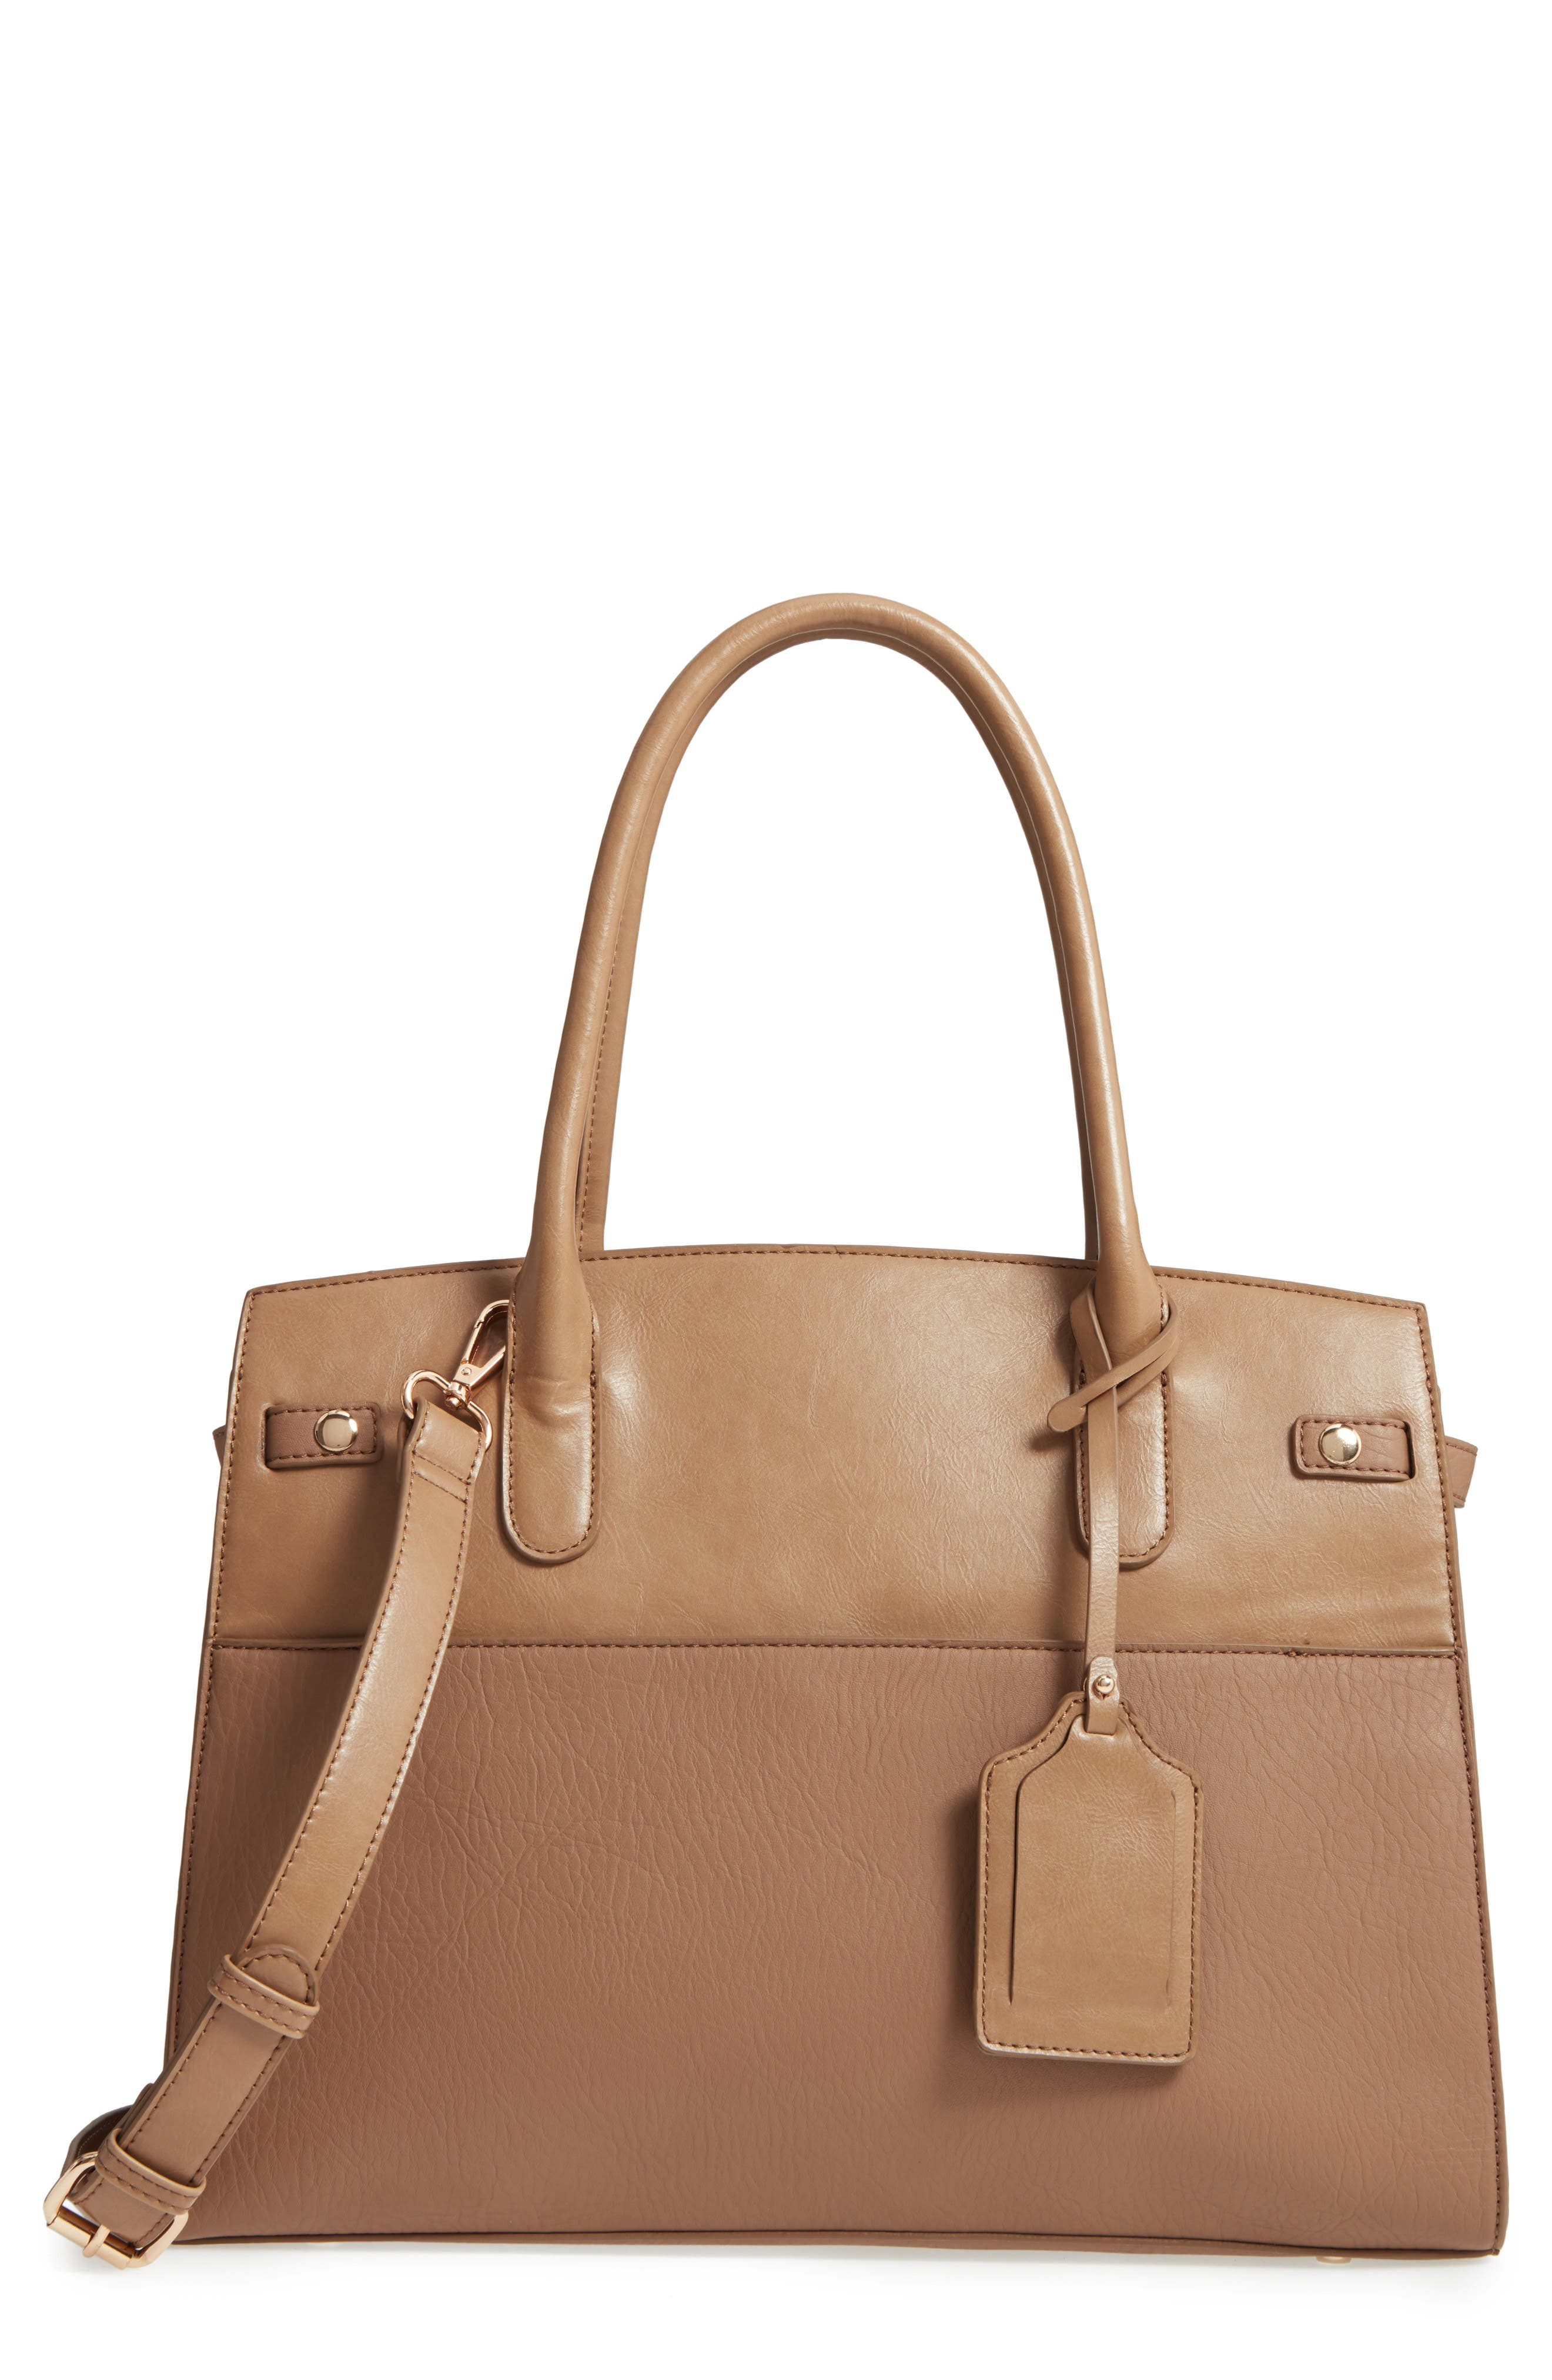 Alternate Image 1 Selected - Sole Society Ladylike Faux Leather Satchel